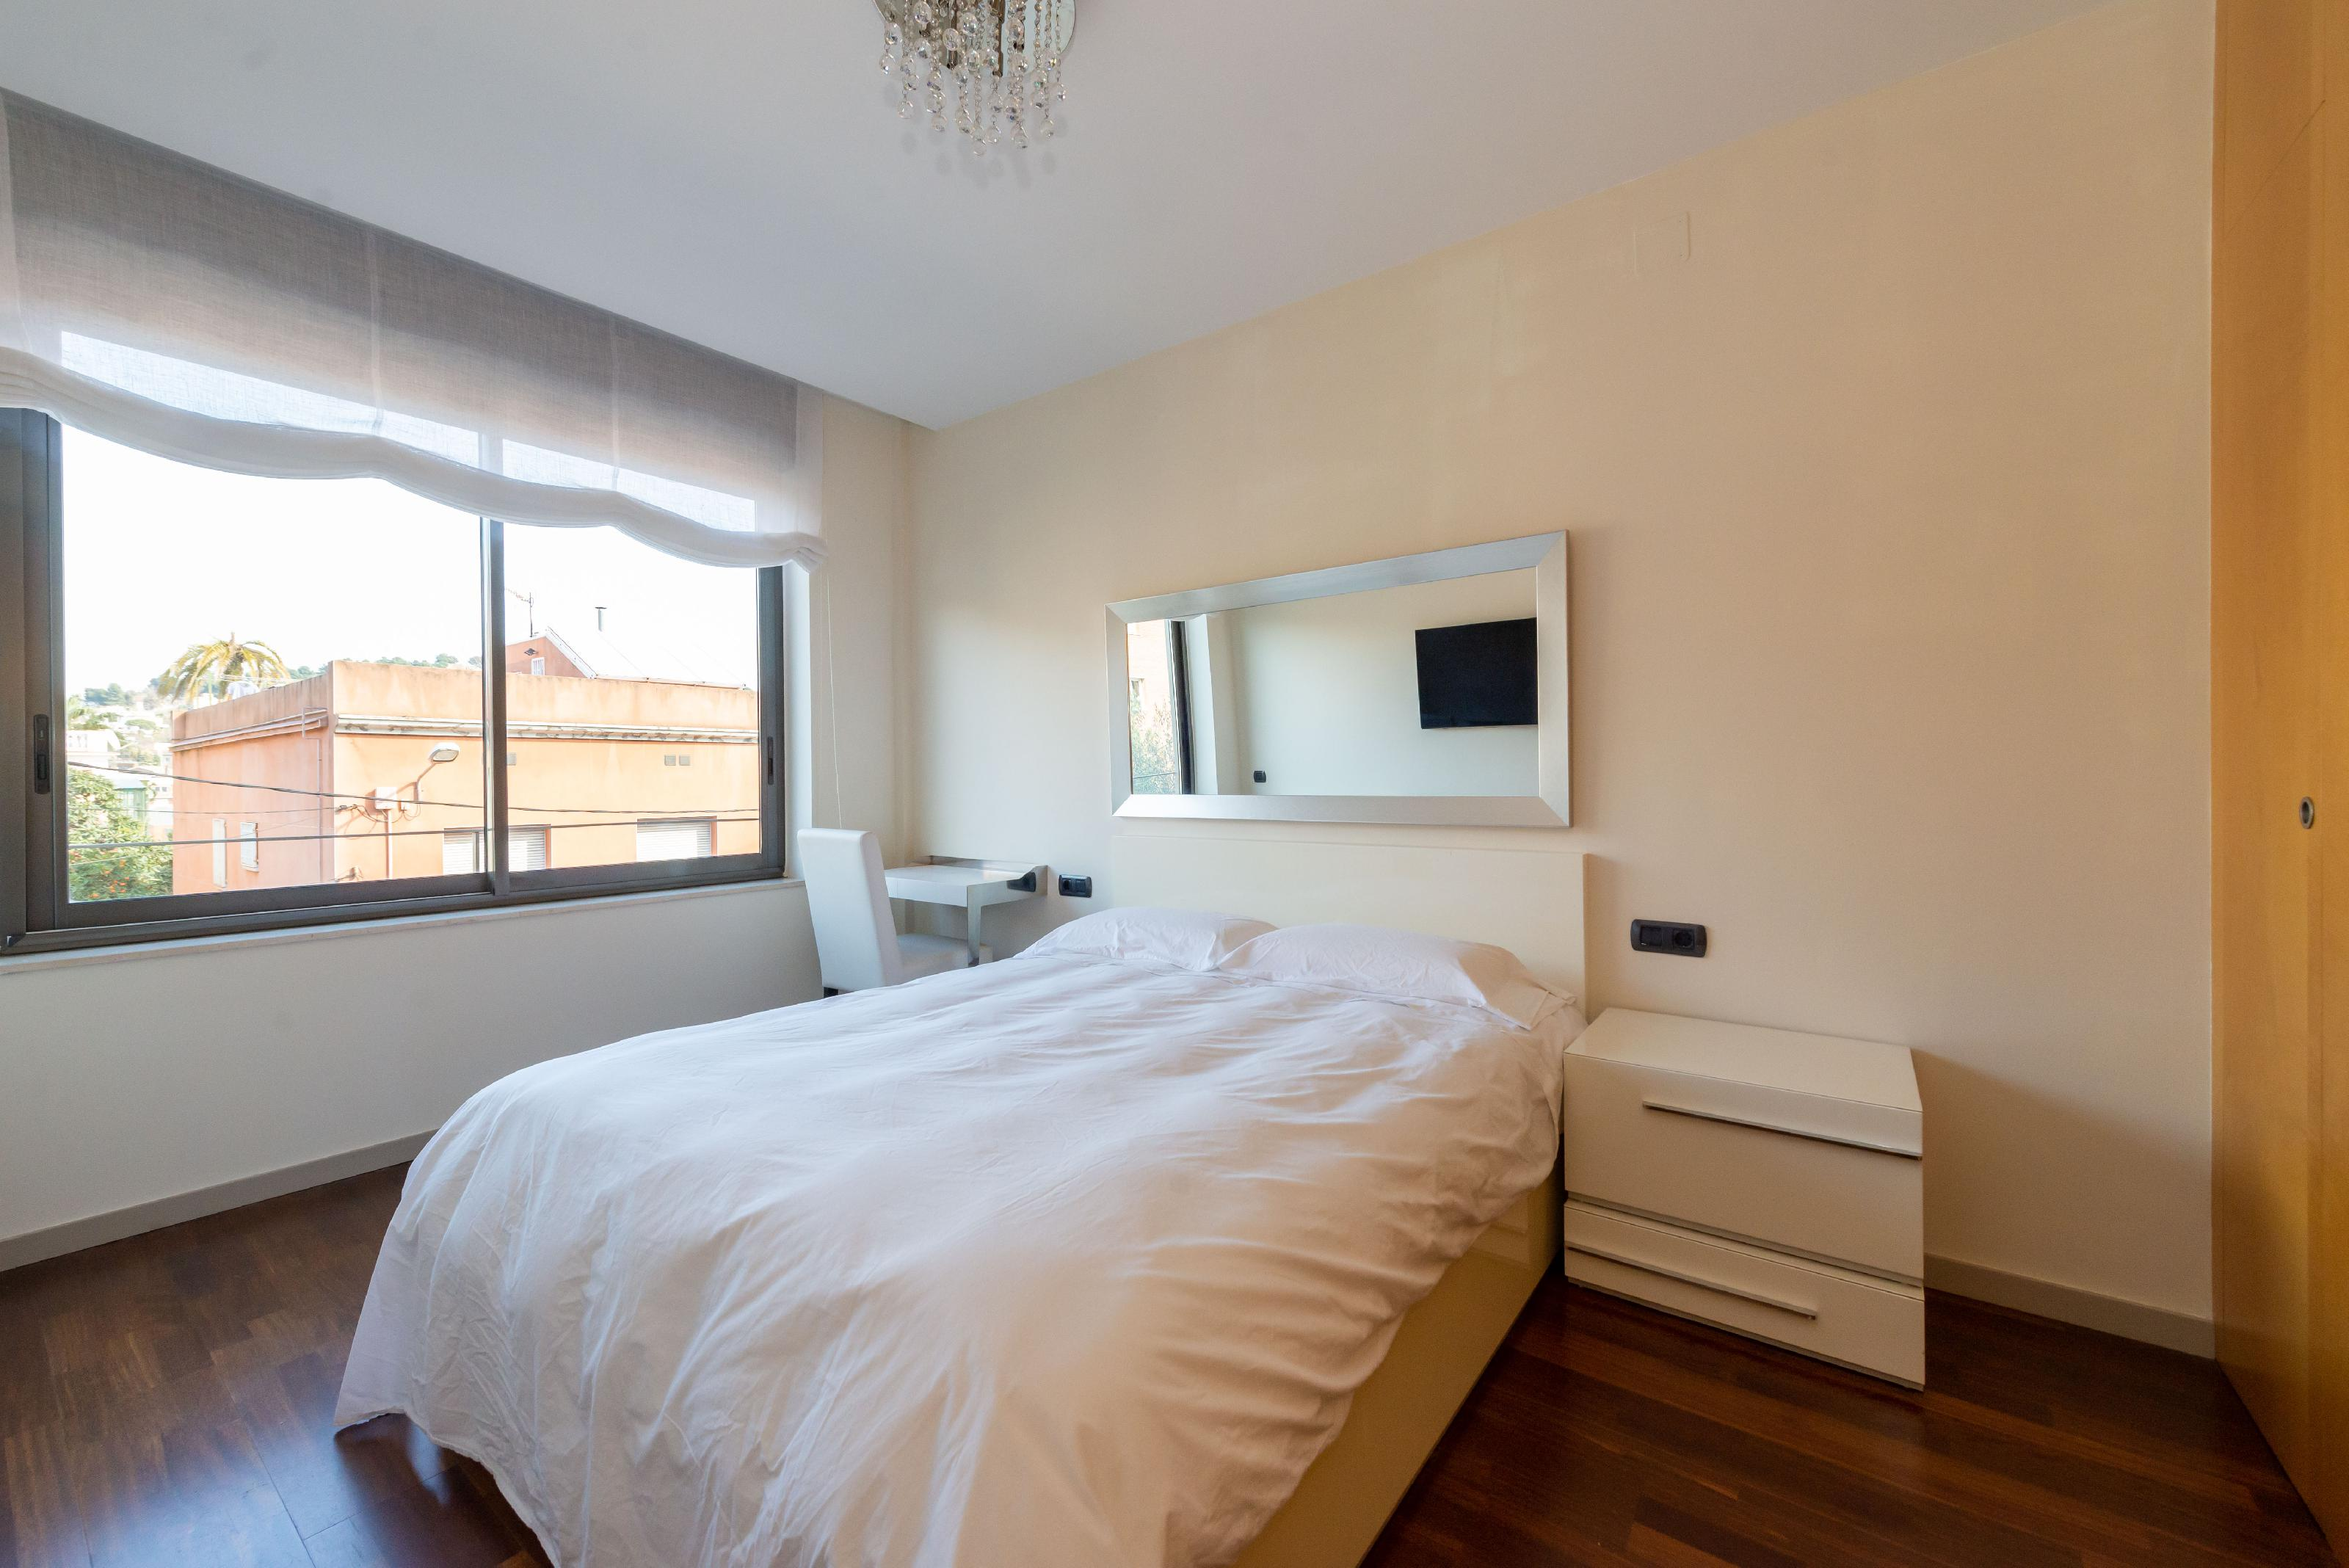 246682 Flat for sale in Gràcia, Vallcarca and Els Penitents 9